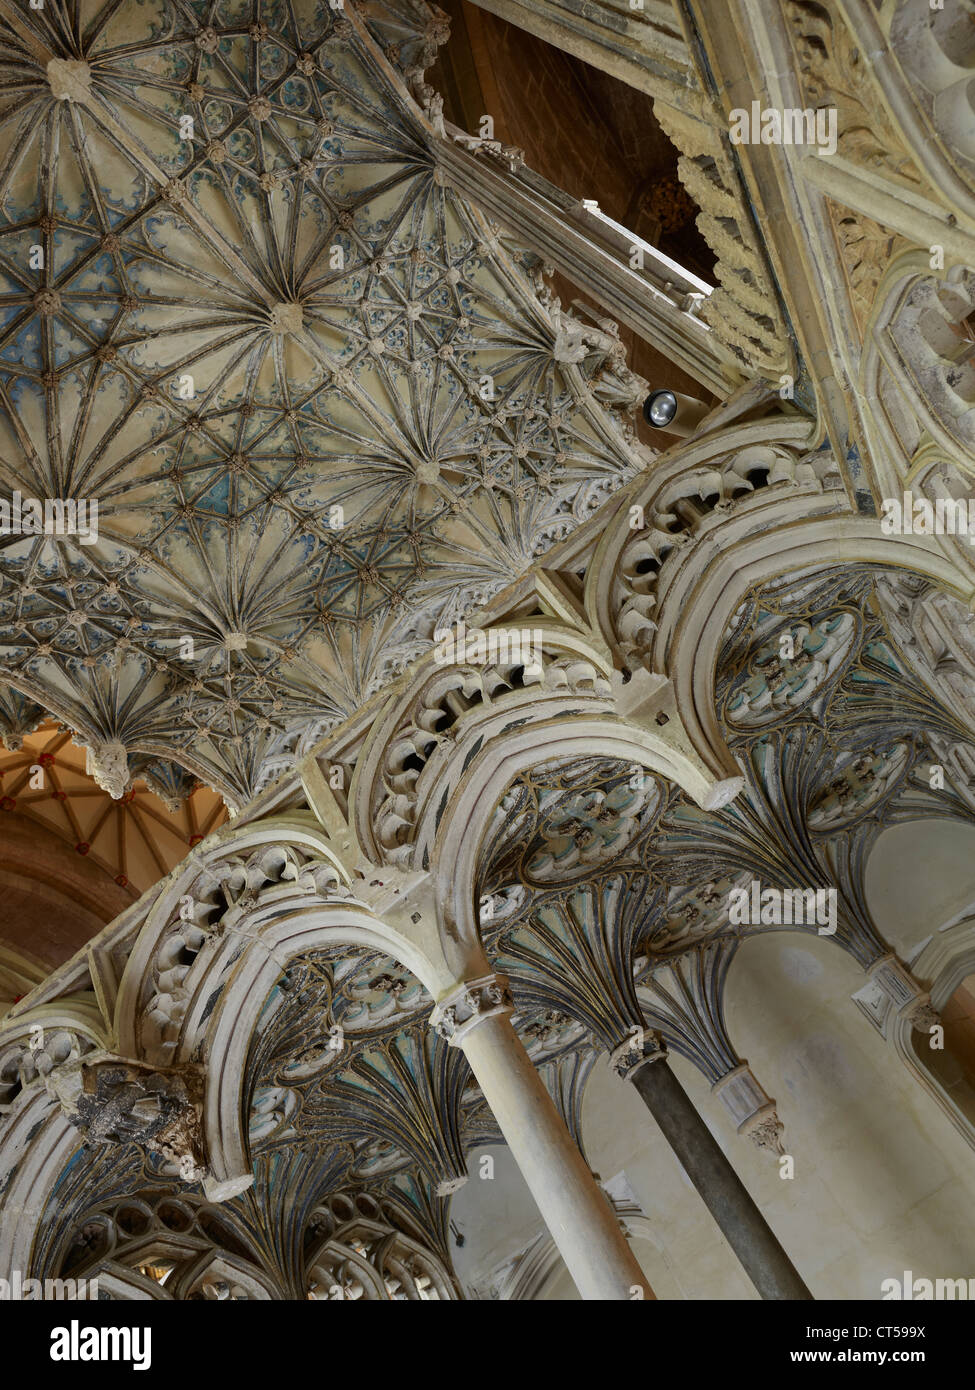 Tewkesbury Abbey, vaulting in Beauchamp chantry chapel - Stock Image